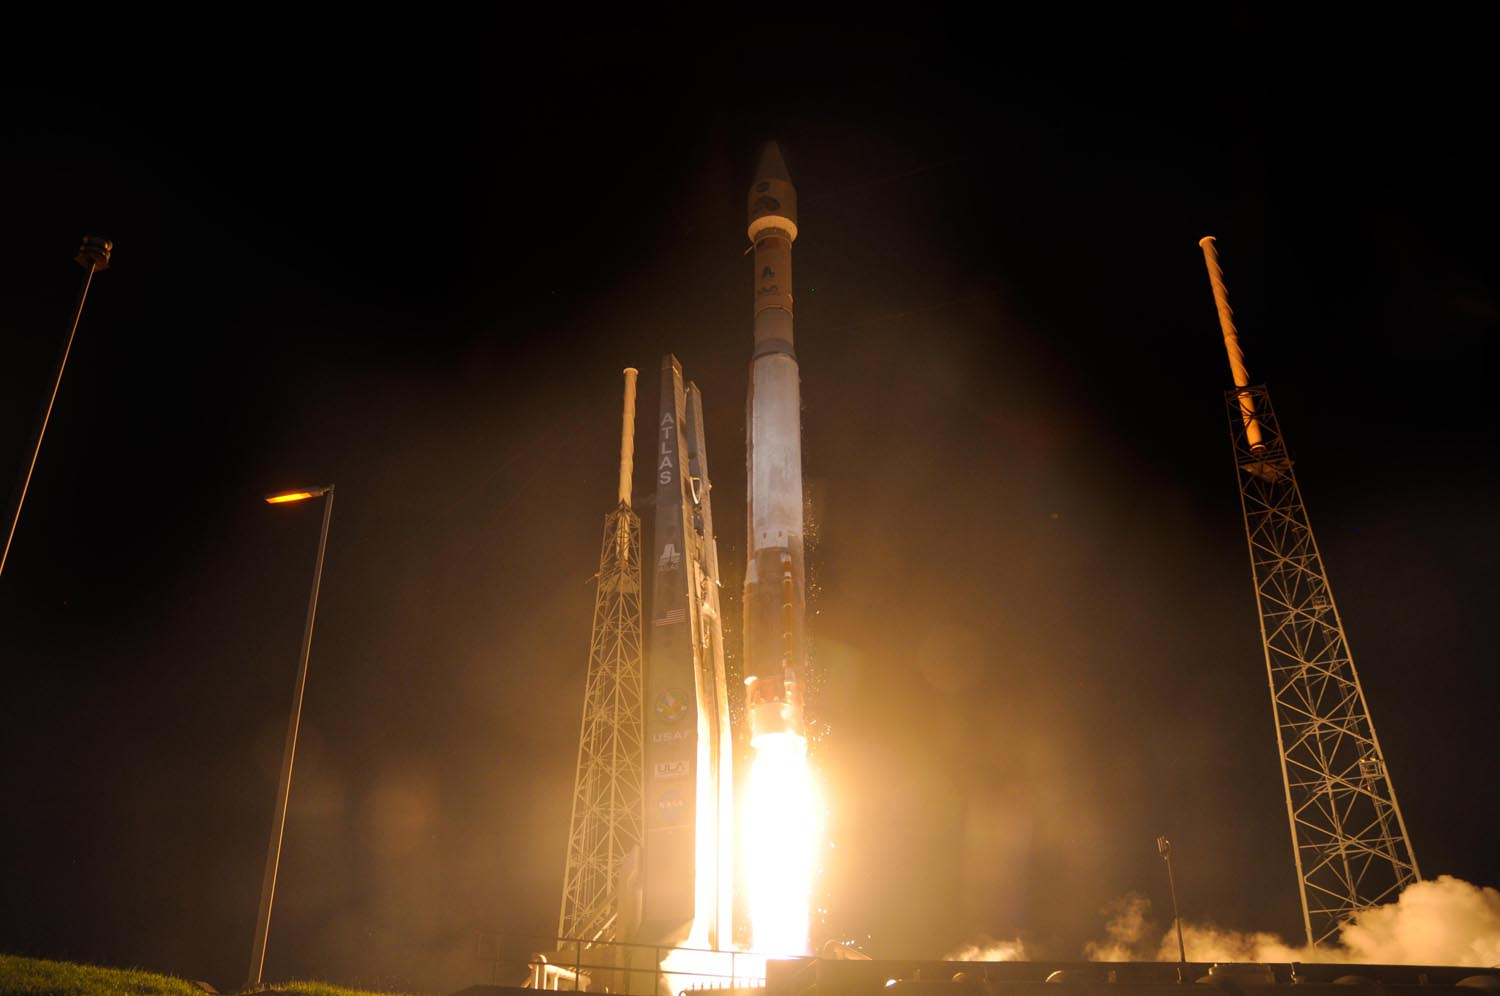 Liftoff! NASA Launches Twin Probes to Study Earth's Radiation Belts